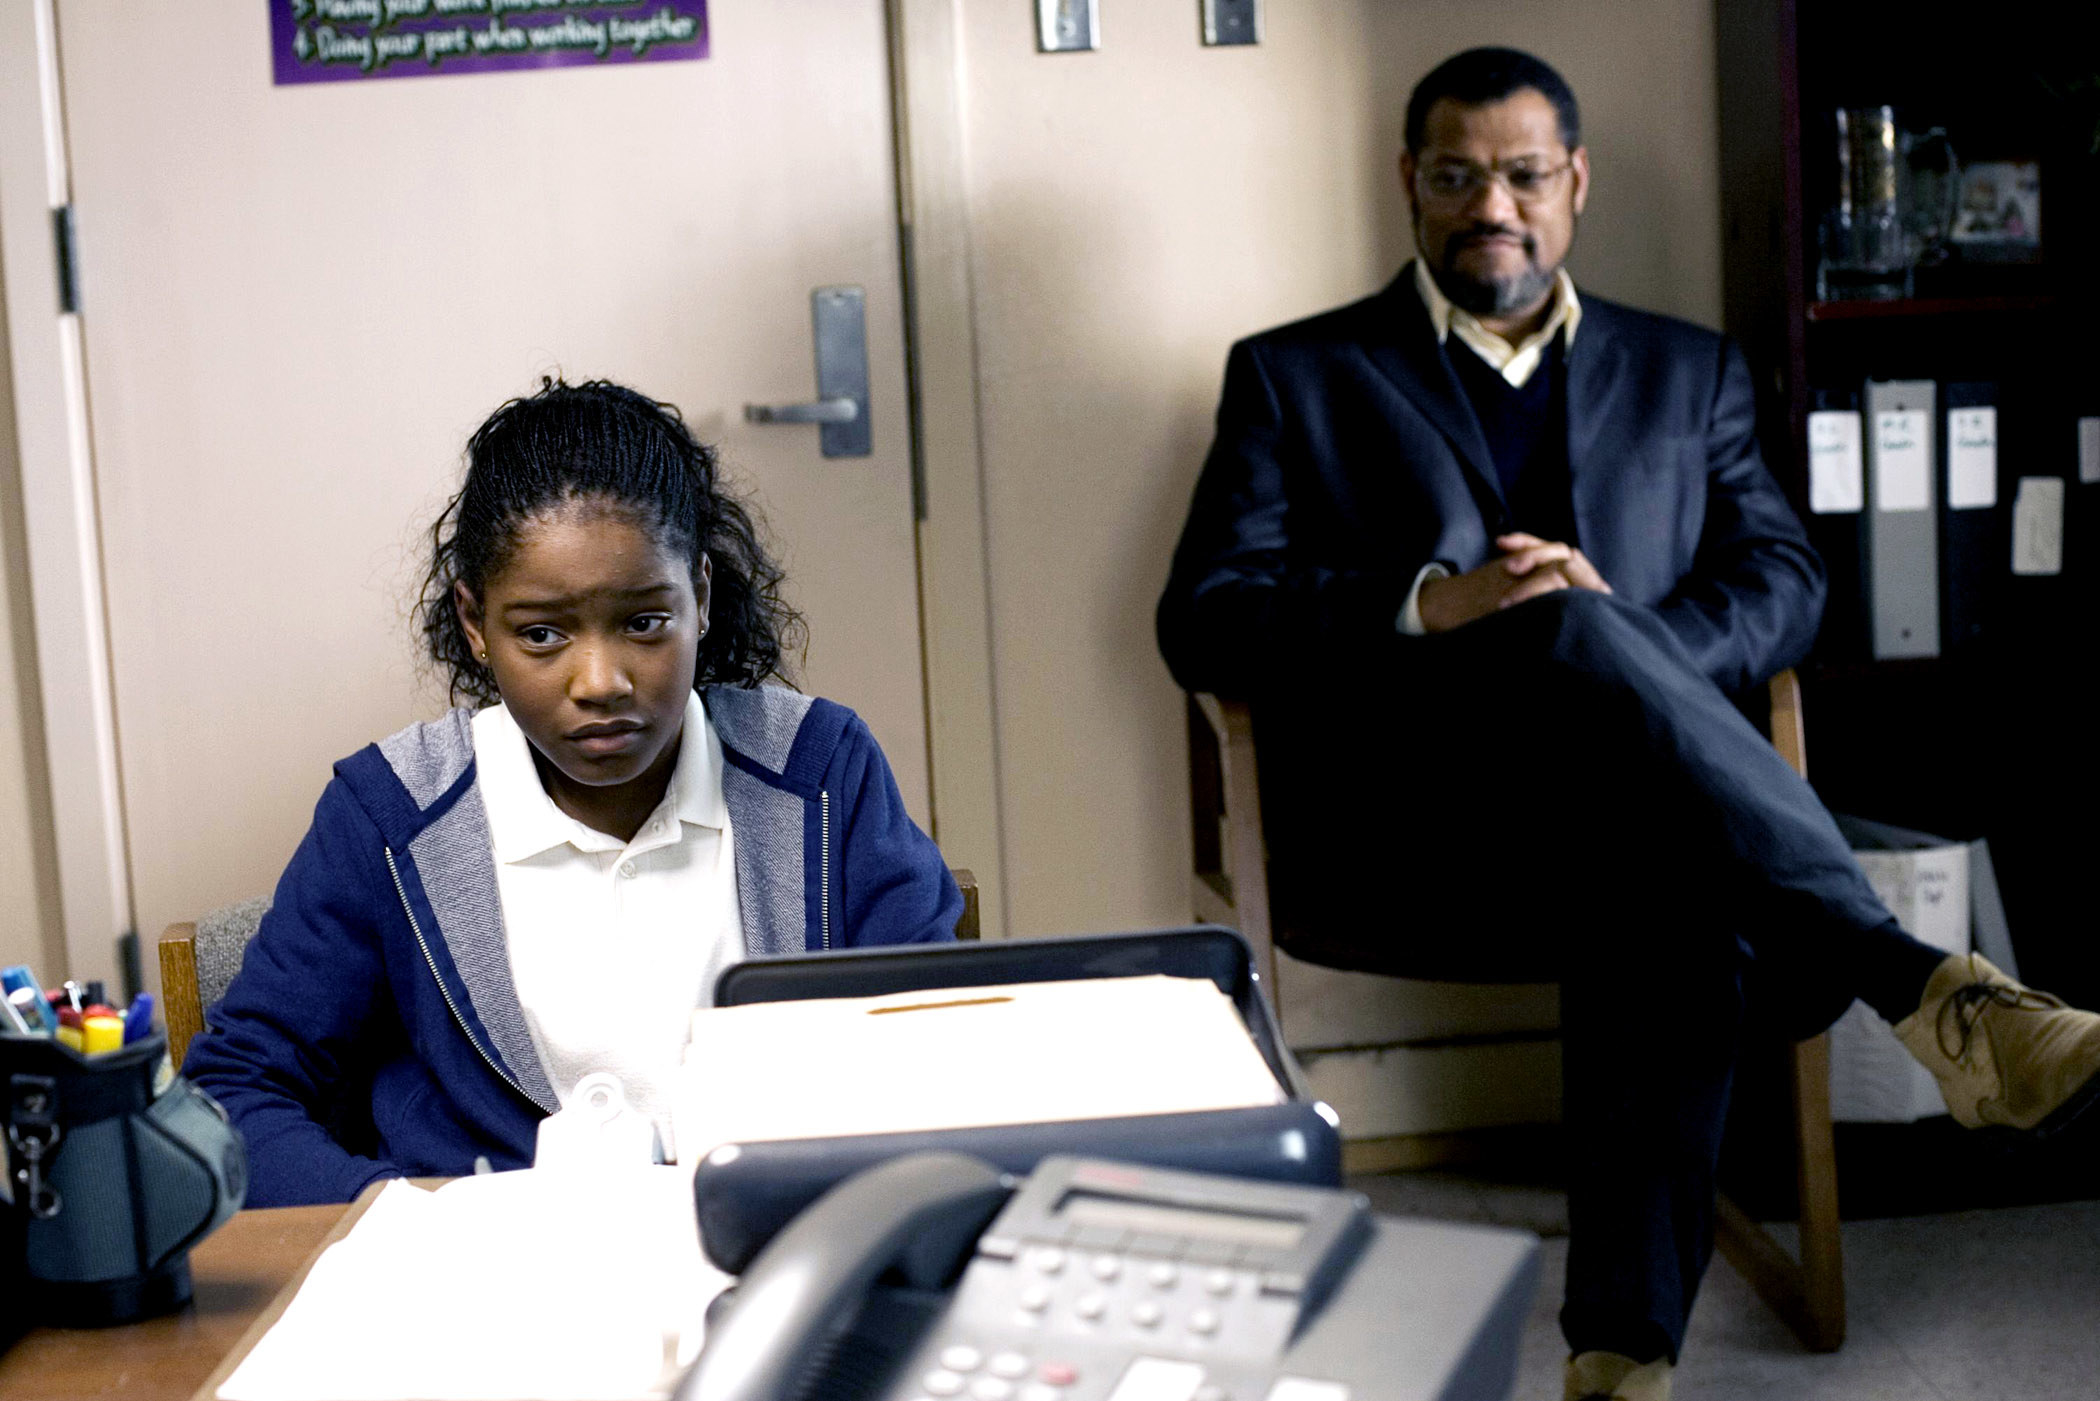 Keke Palmer and Laurence Fishburne sit in an office